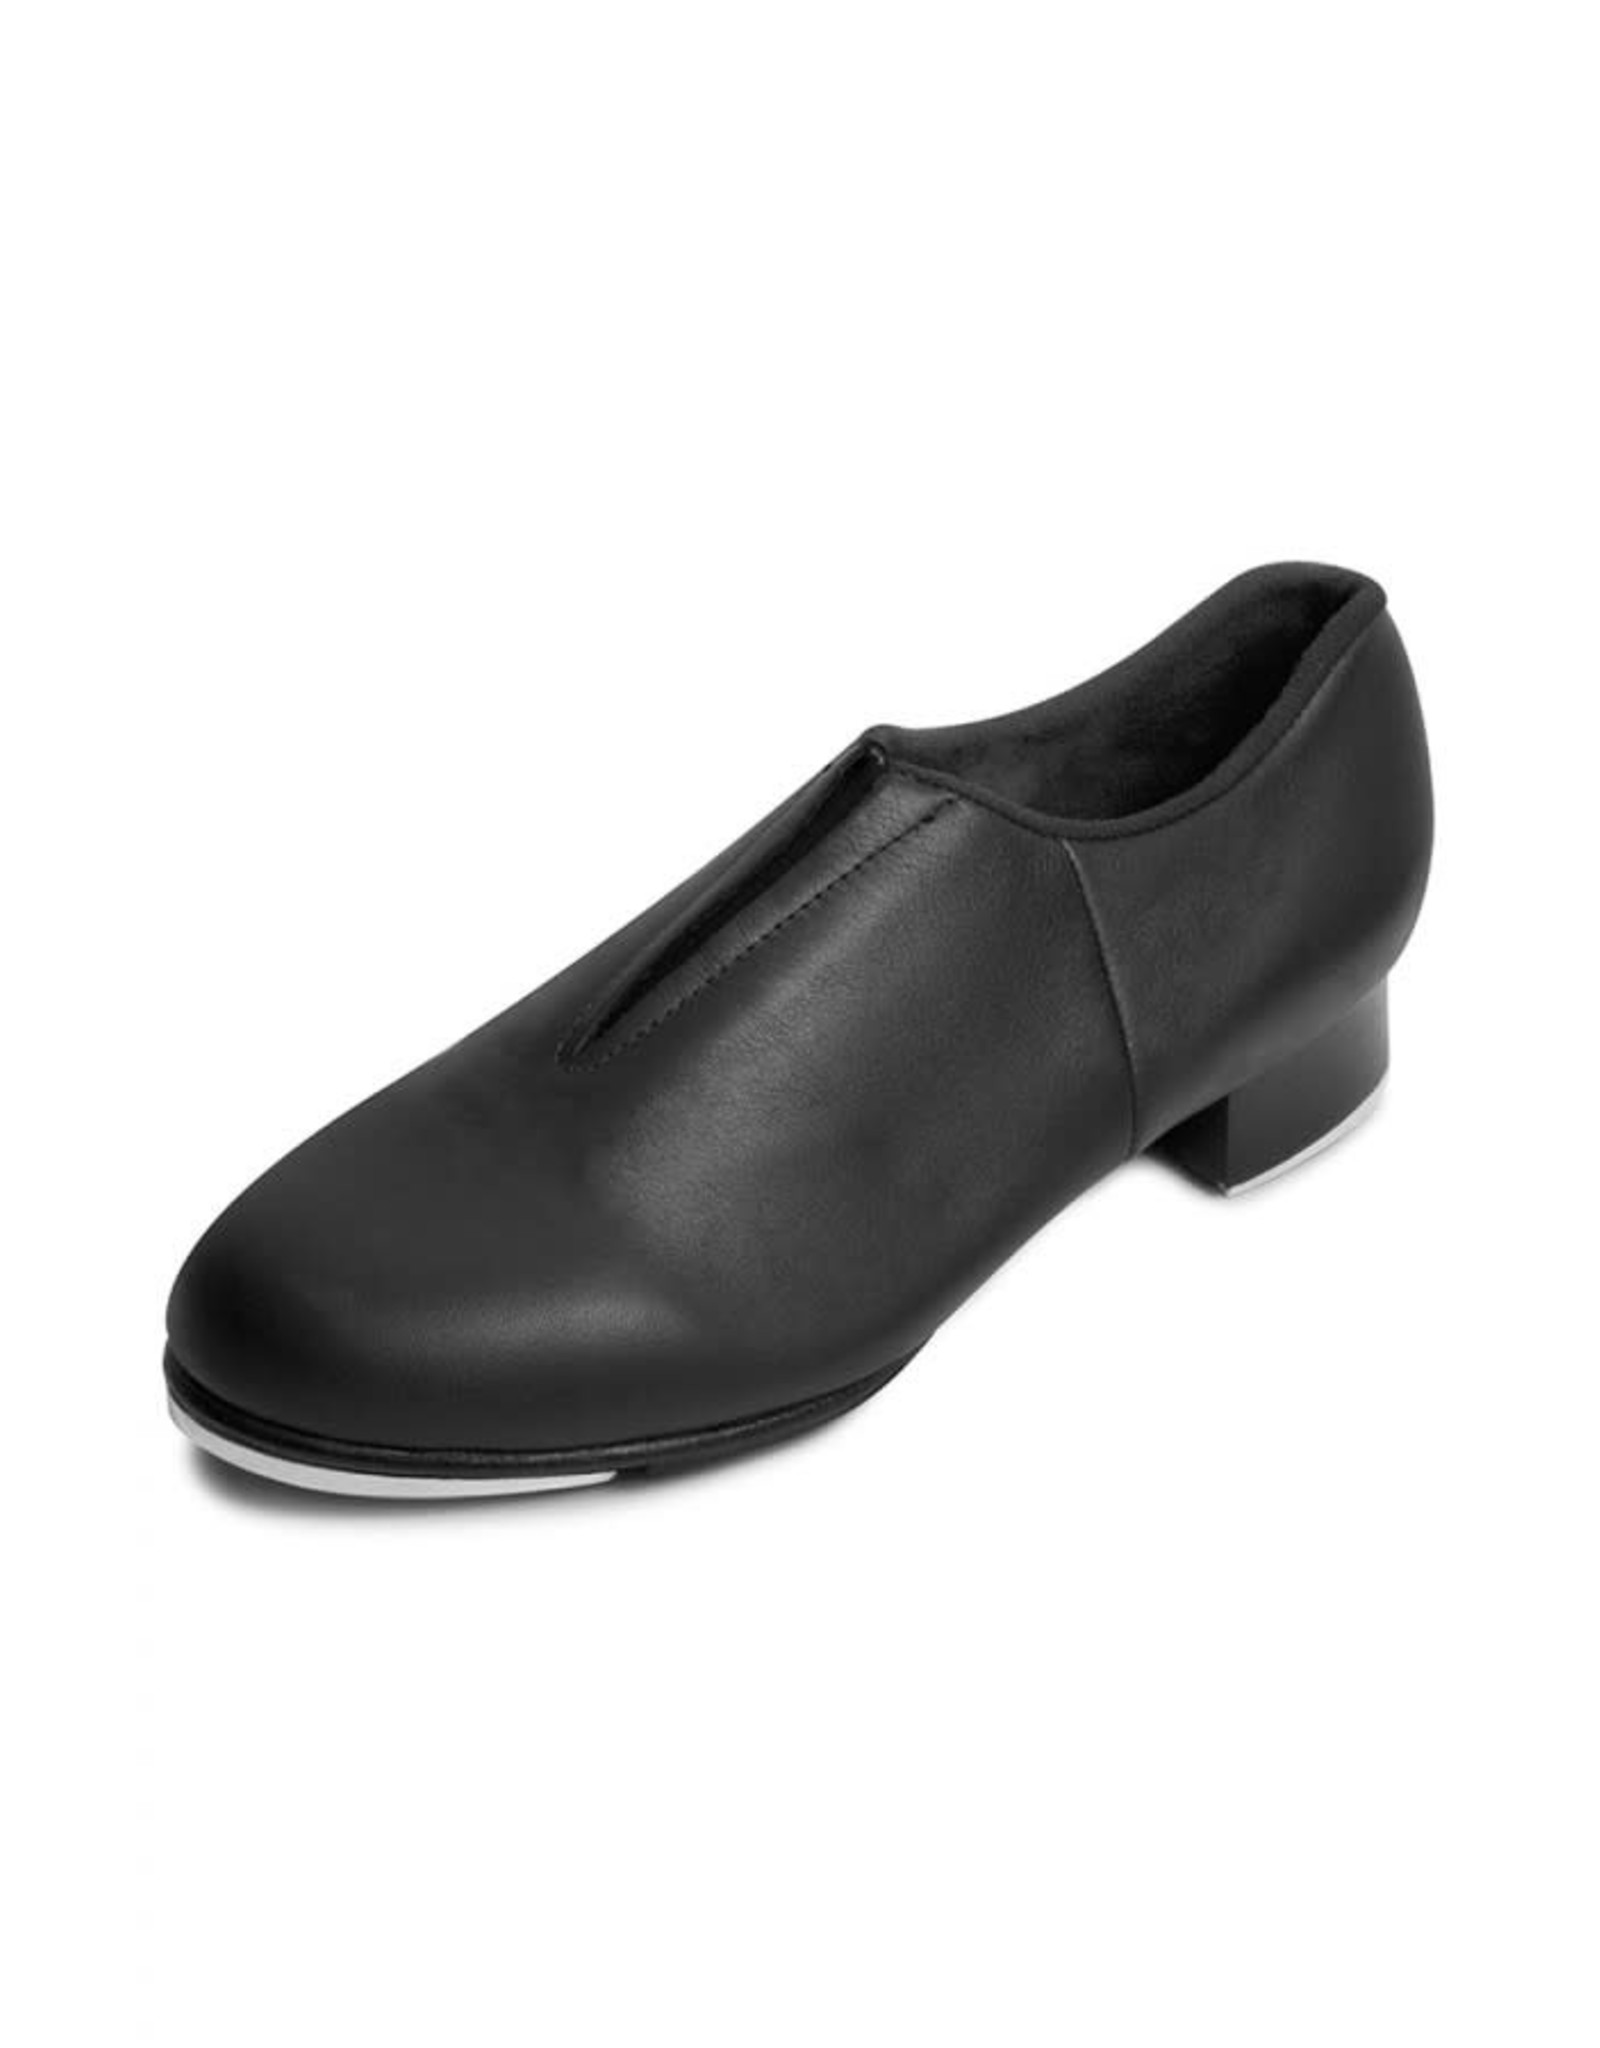 Bloch Bloch Tap Flex Slip On - Black  11 N